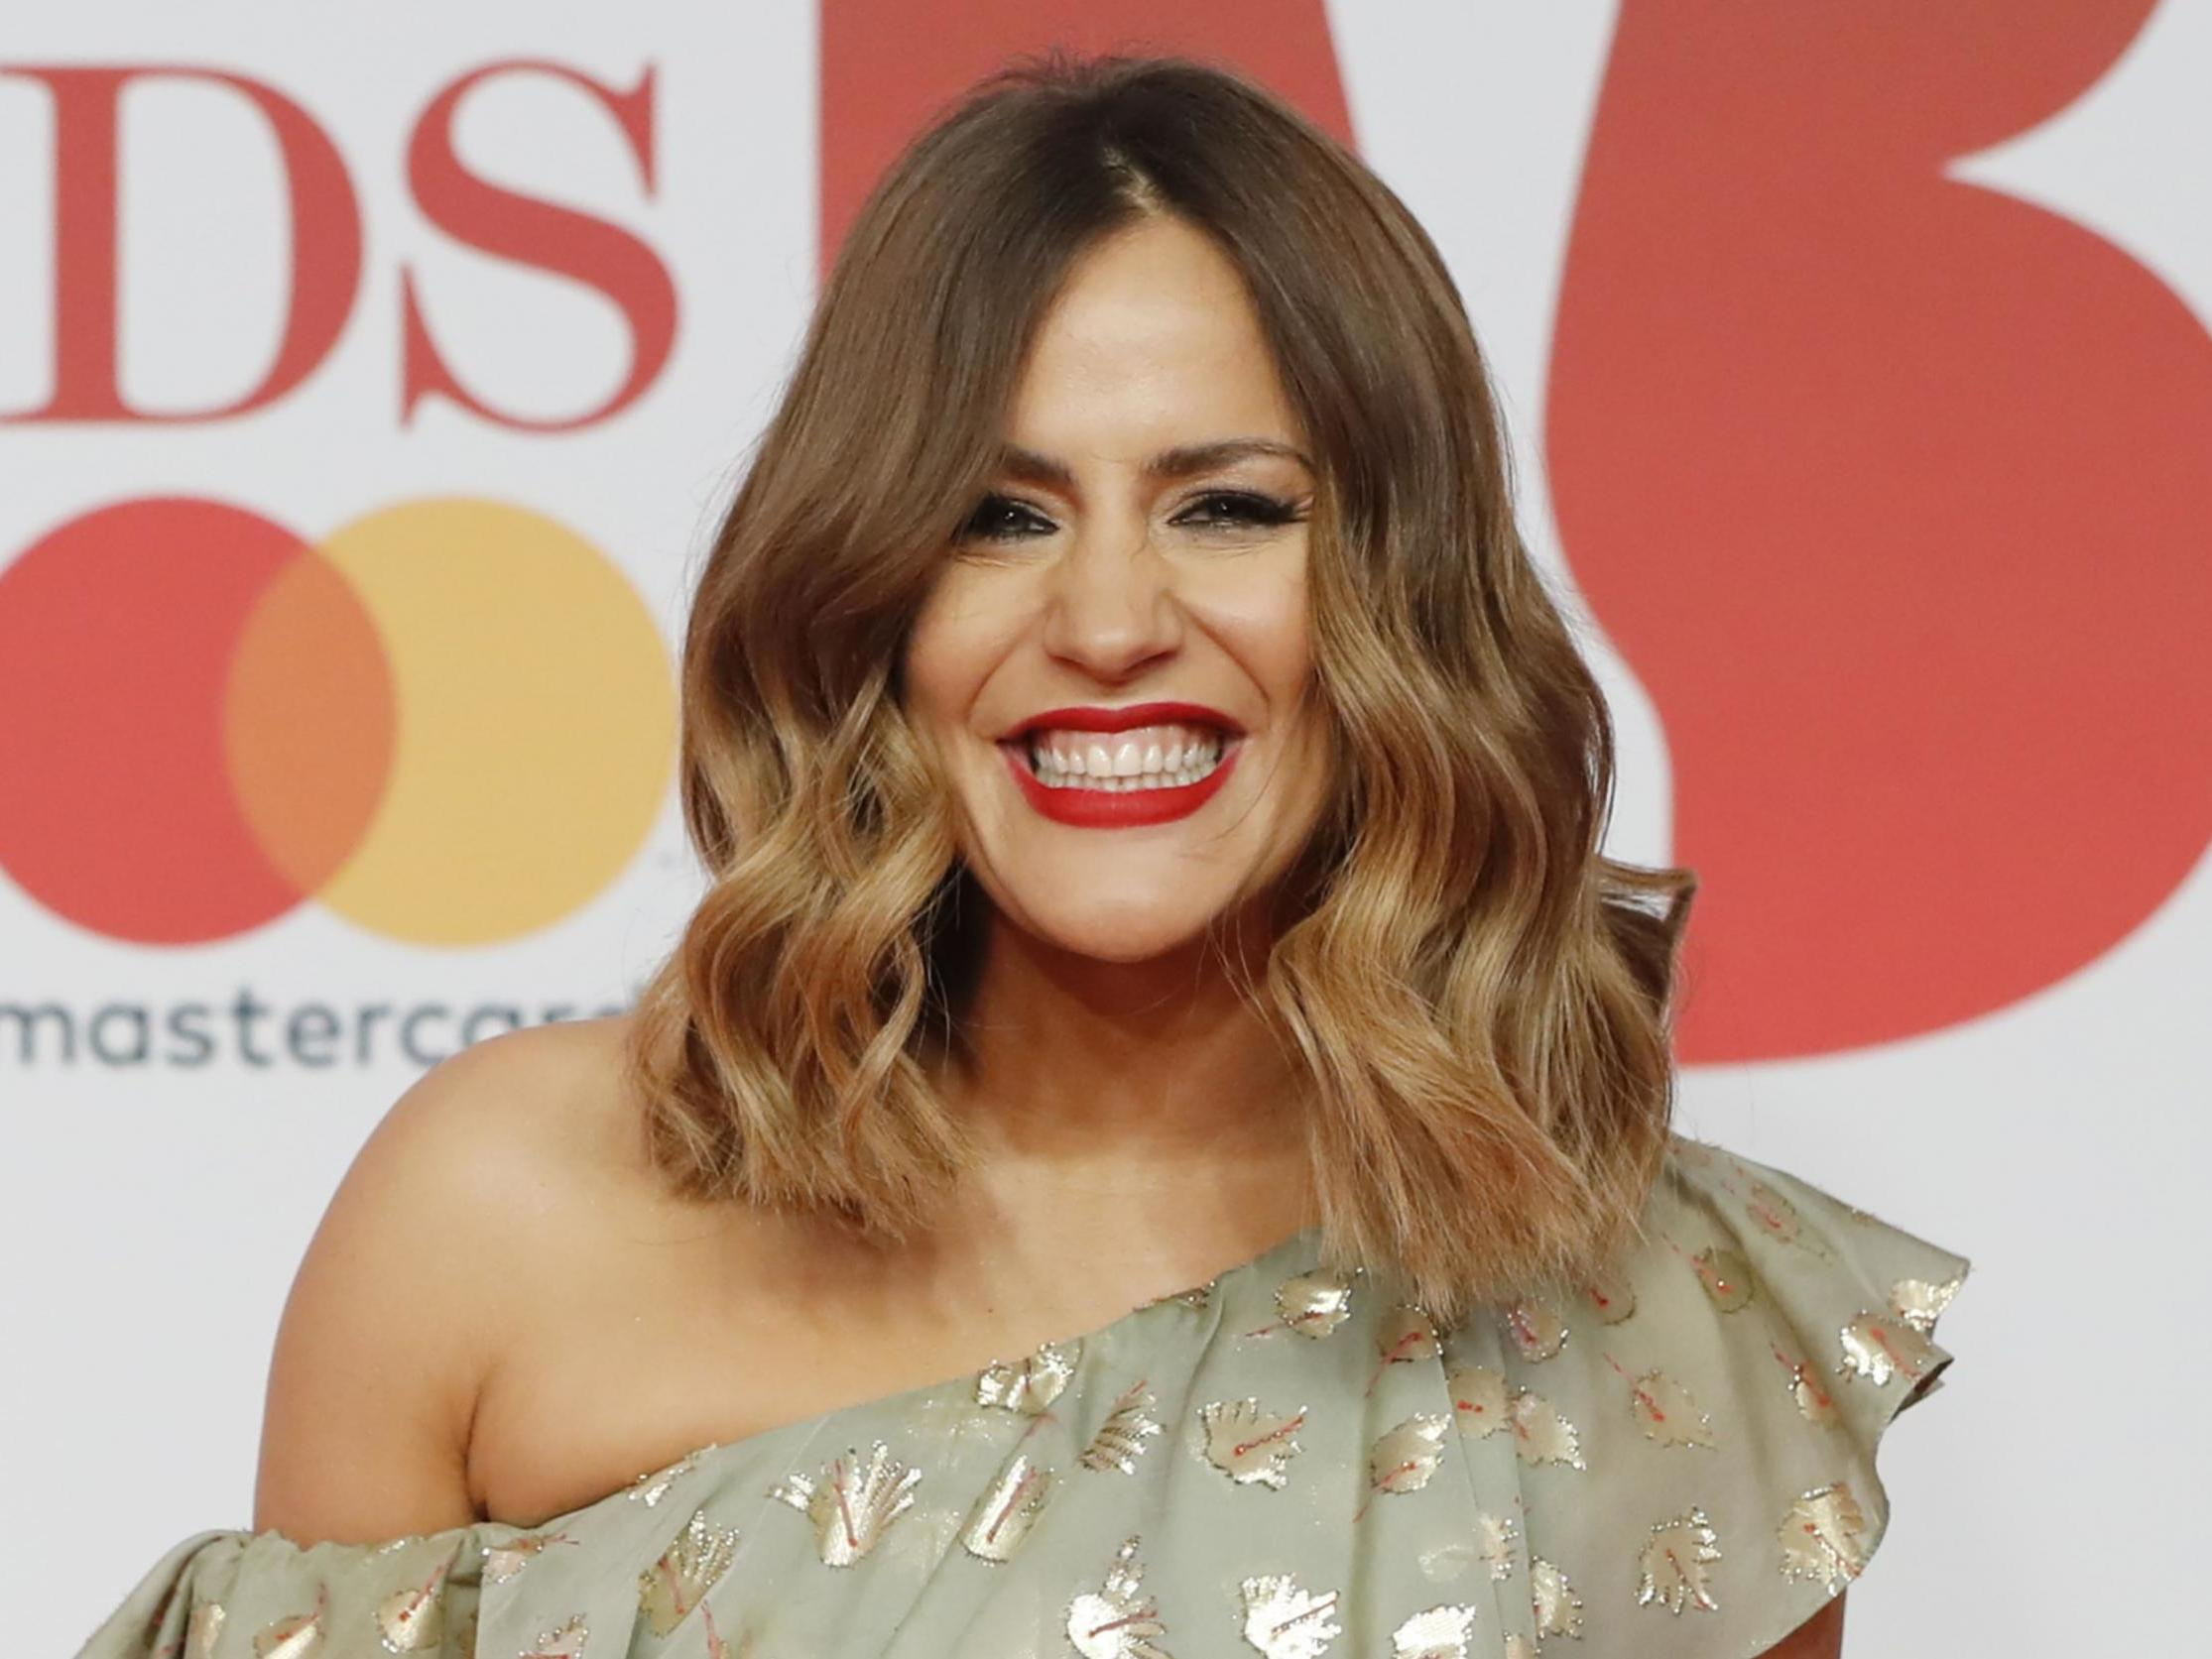 Opinion: Knee-jerk petitions over Caroline Flack's death won't make the truth any clearer